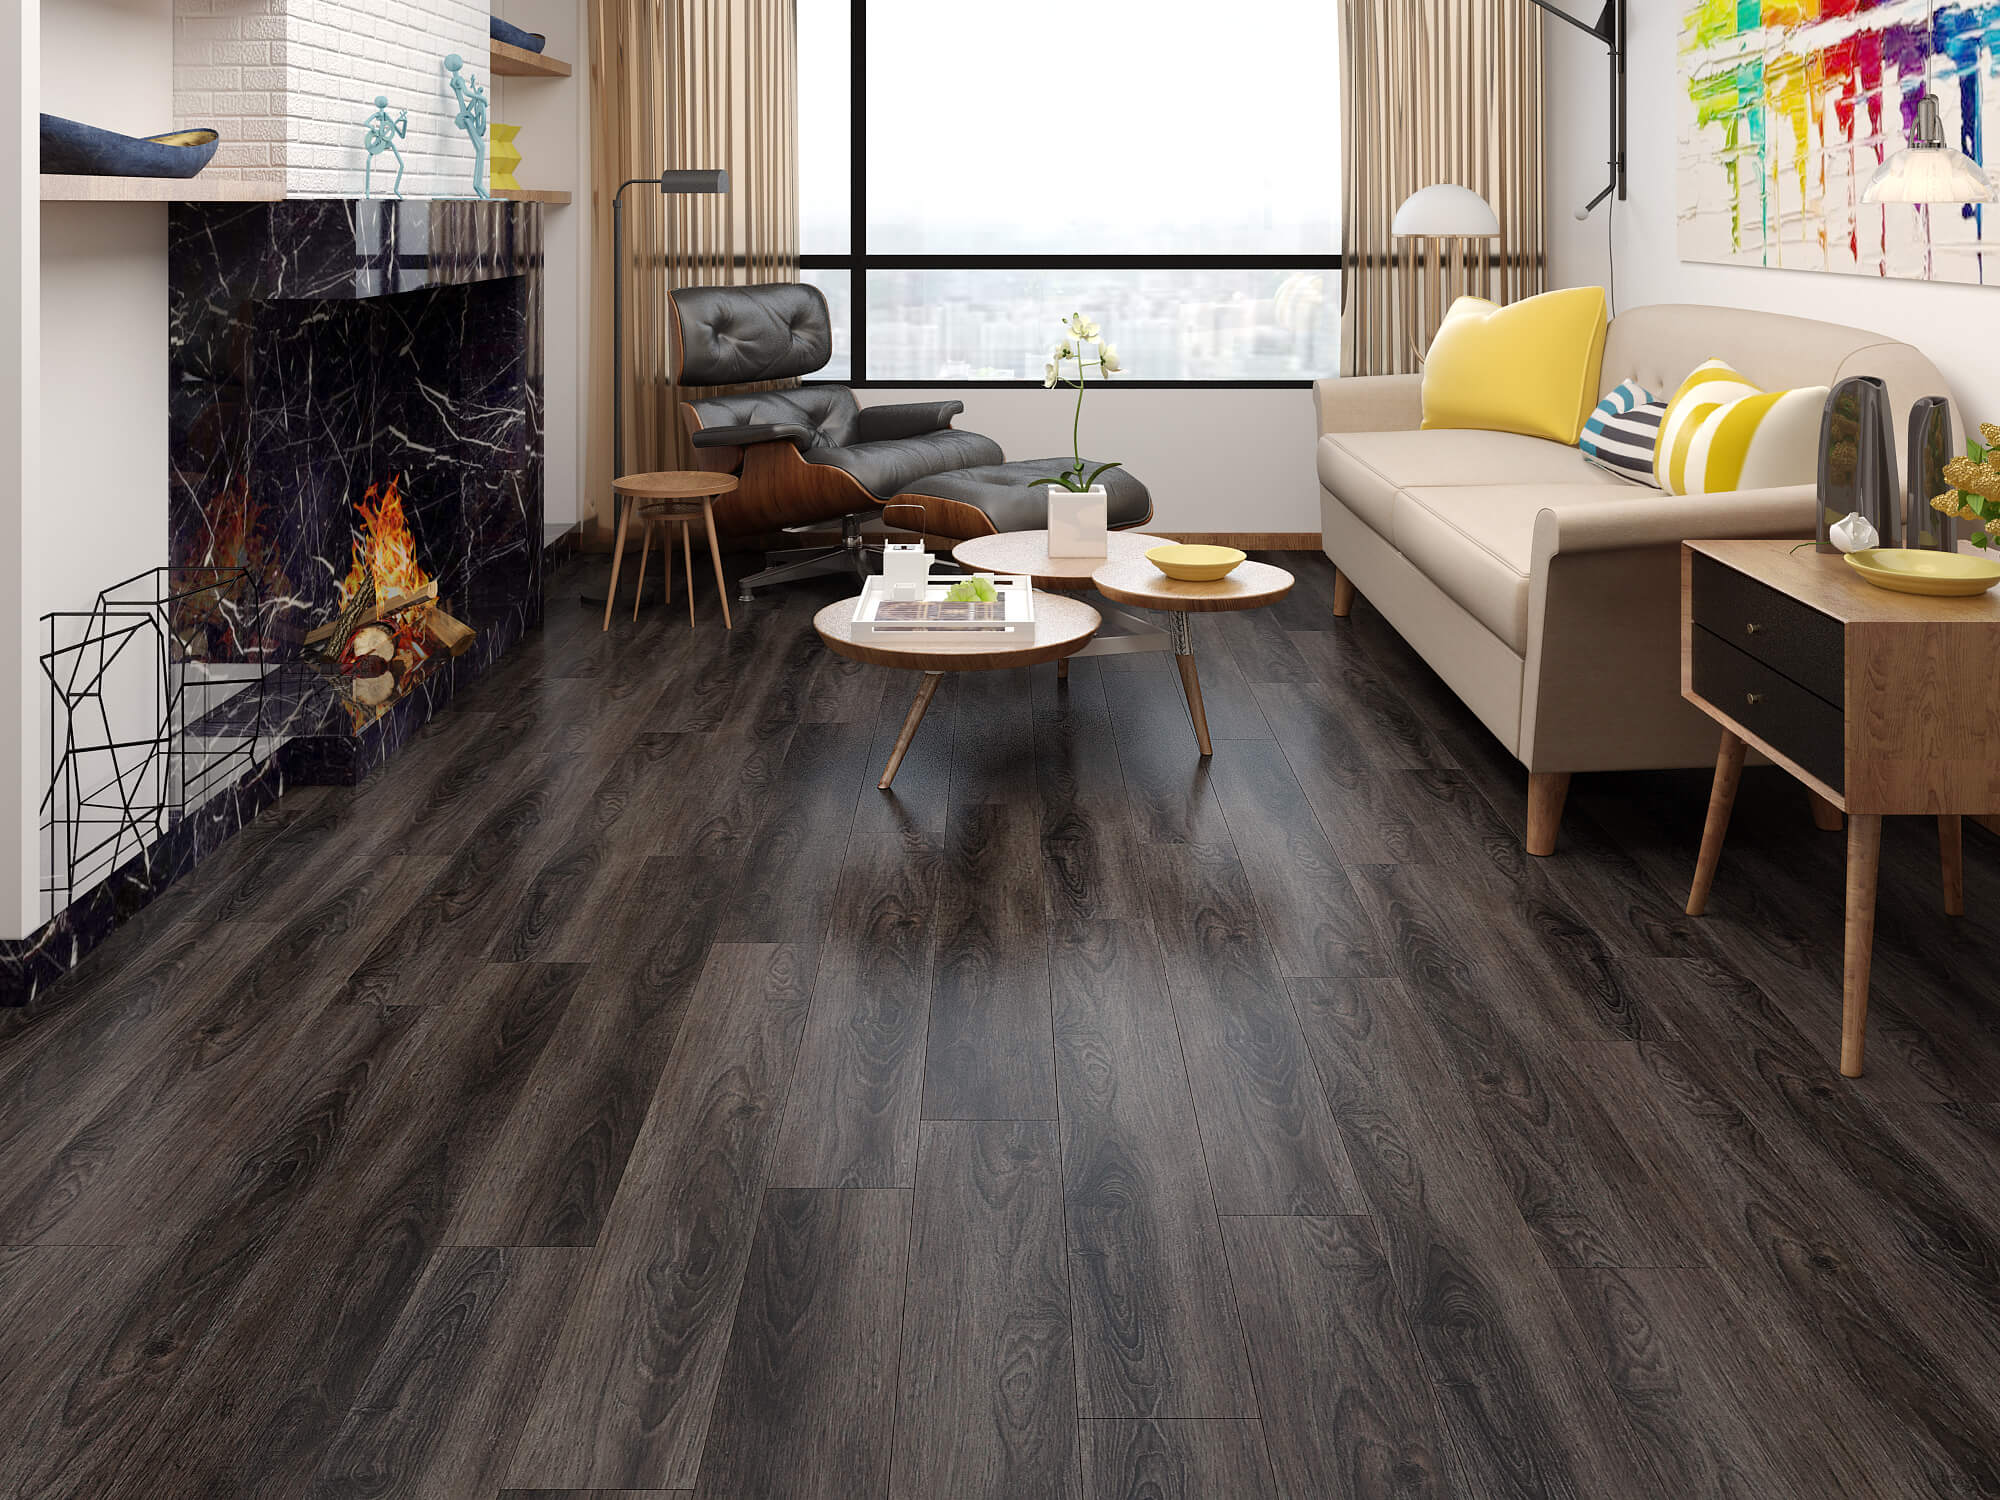 Impervia Commercial Expresso Oak Luxury Vinyl Flooring